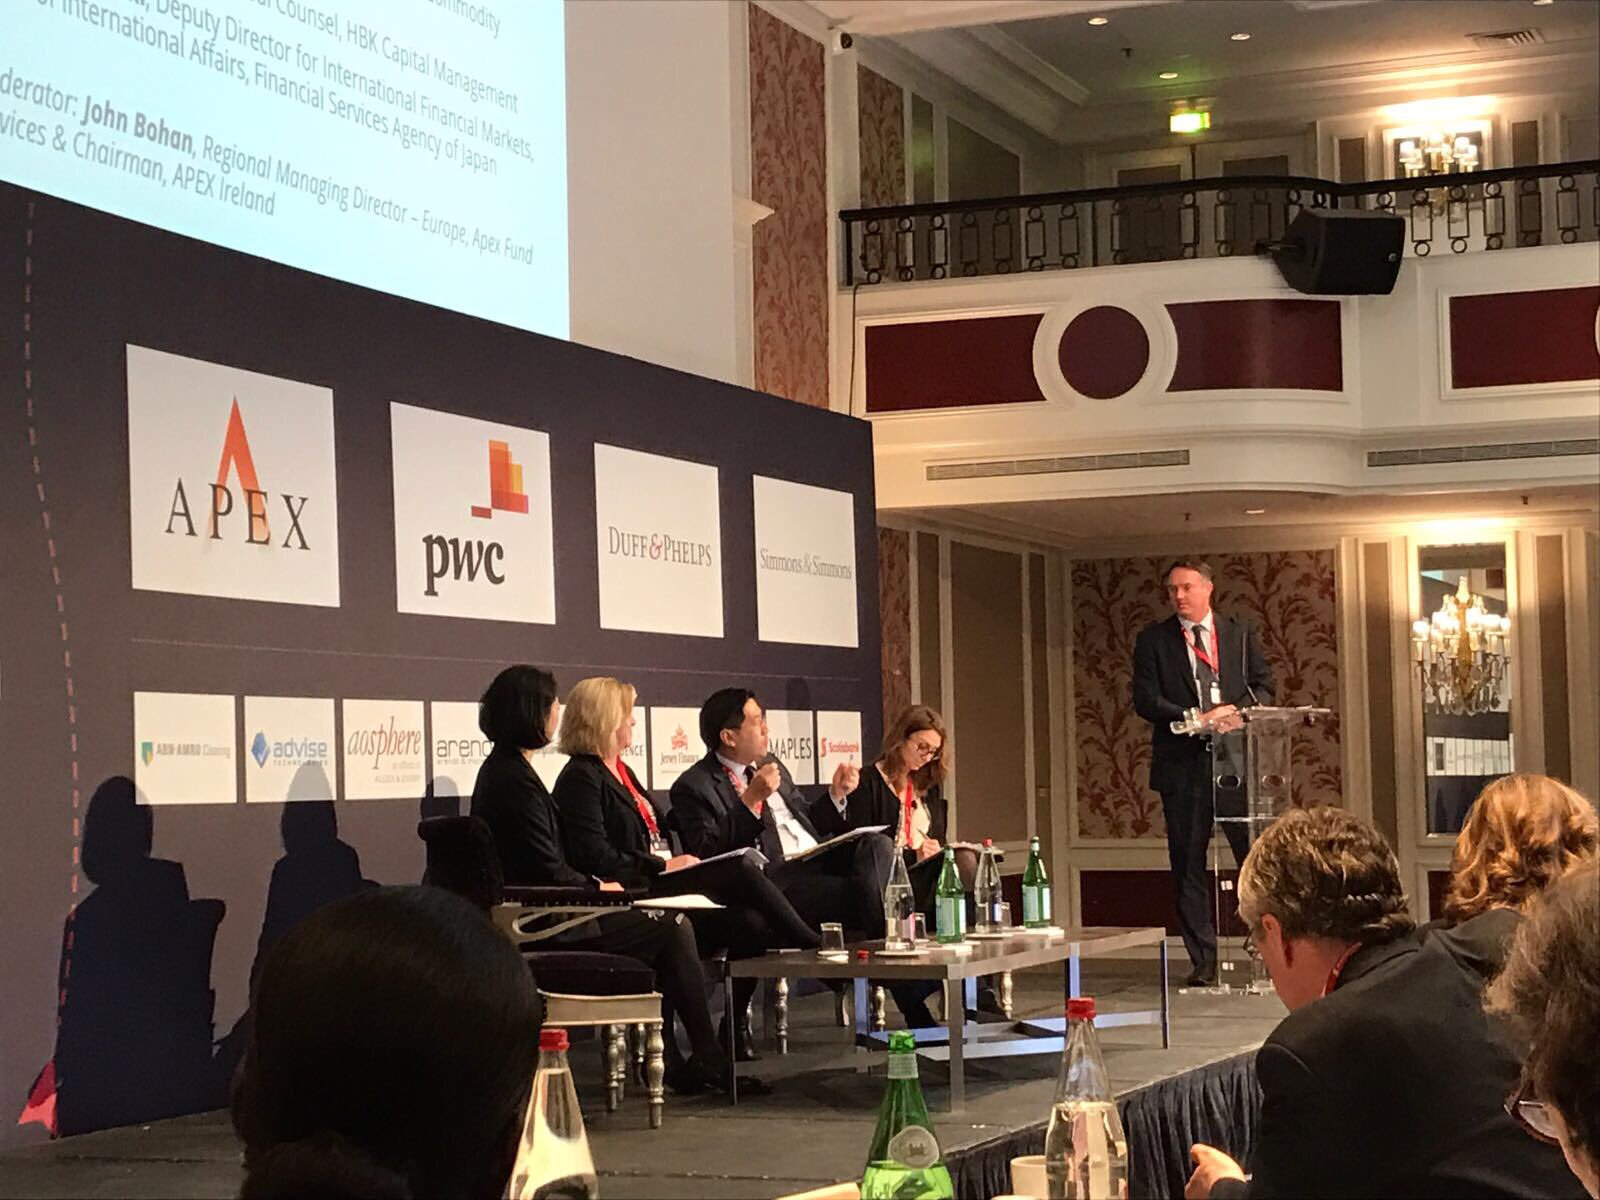 APEX Europe MD moderates the global outlook panel at @AIMA_org #GPRF2017